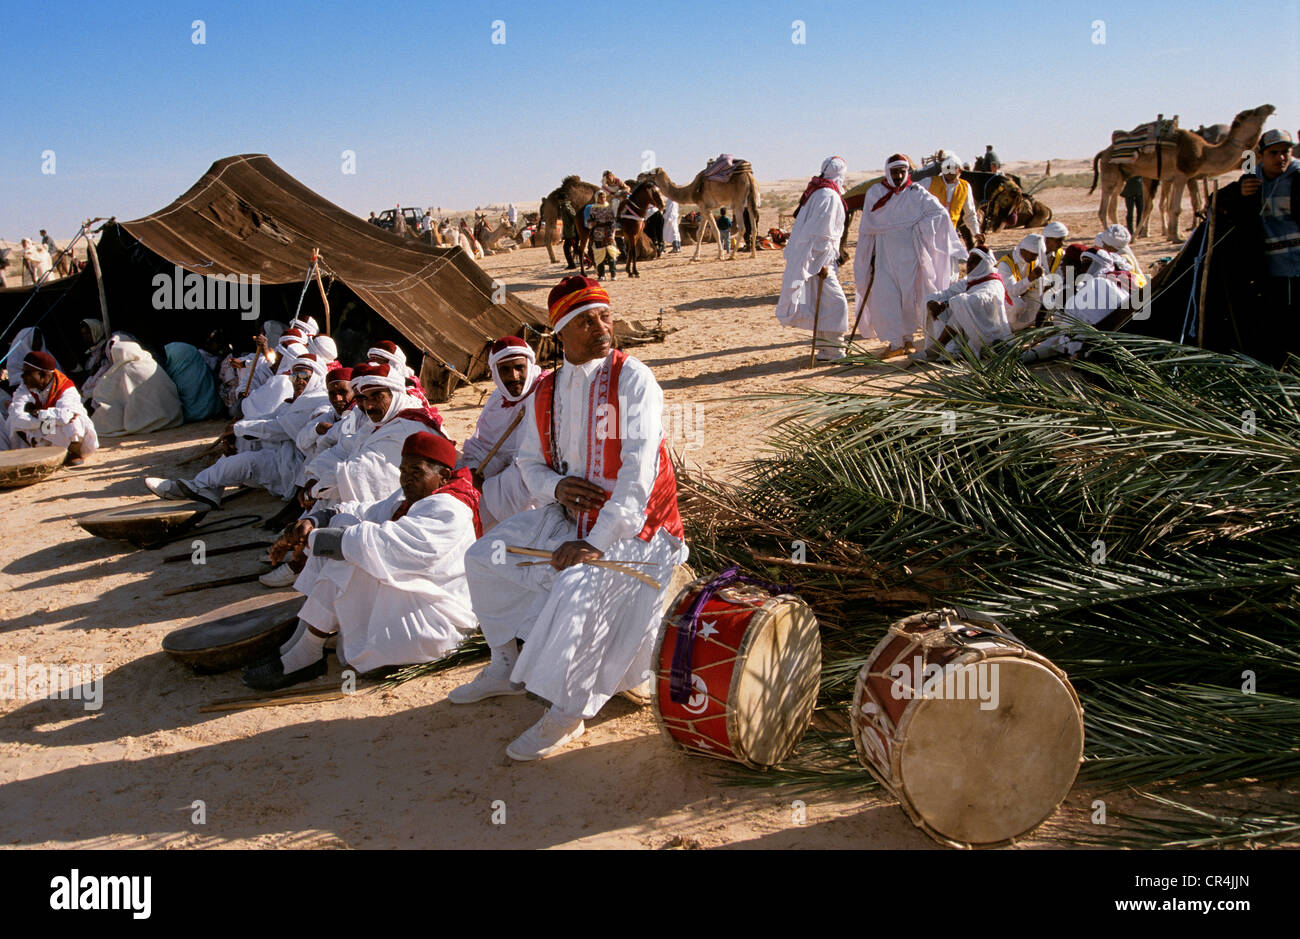 Tunisia, Kebili Governorate, Douz, every year the Desert Festival gathers musicians and dancers for a week of Fantasia - Stock Image